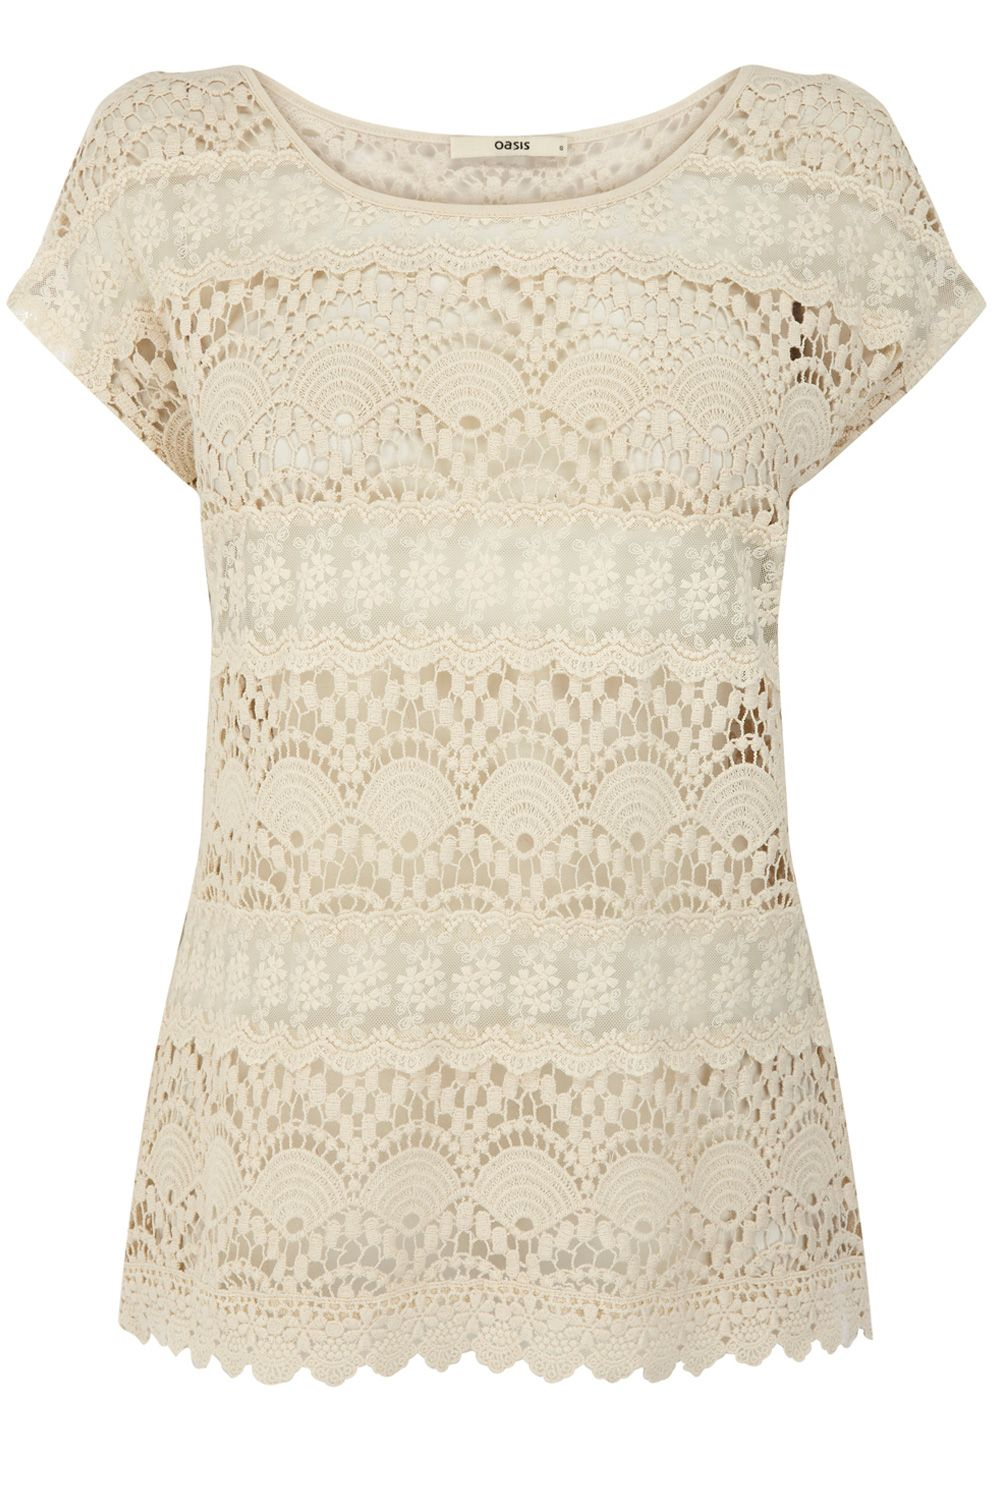 Oasis Crochet Lace T-shirt in White (off white) Lyst